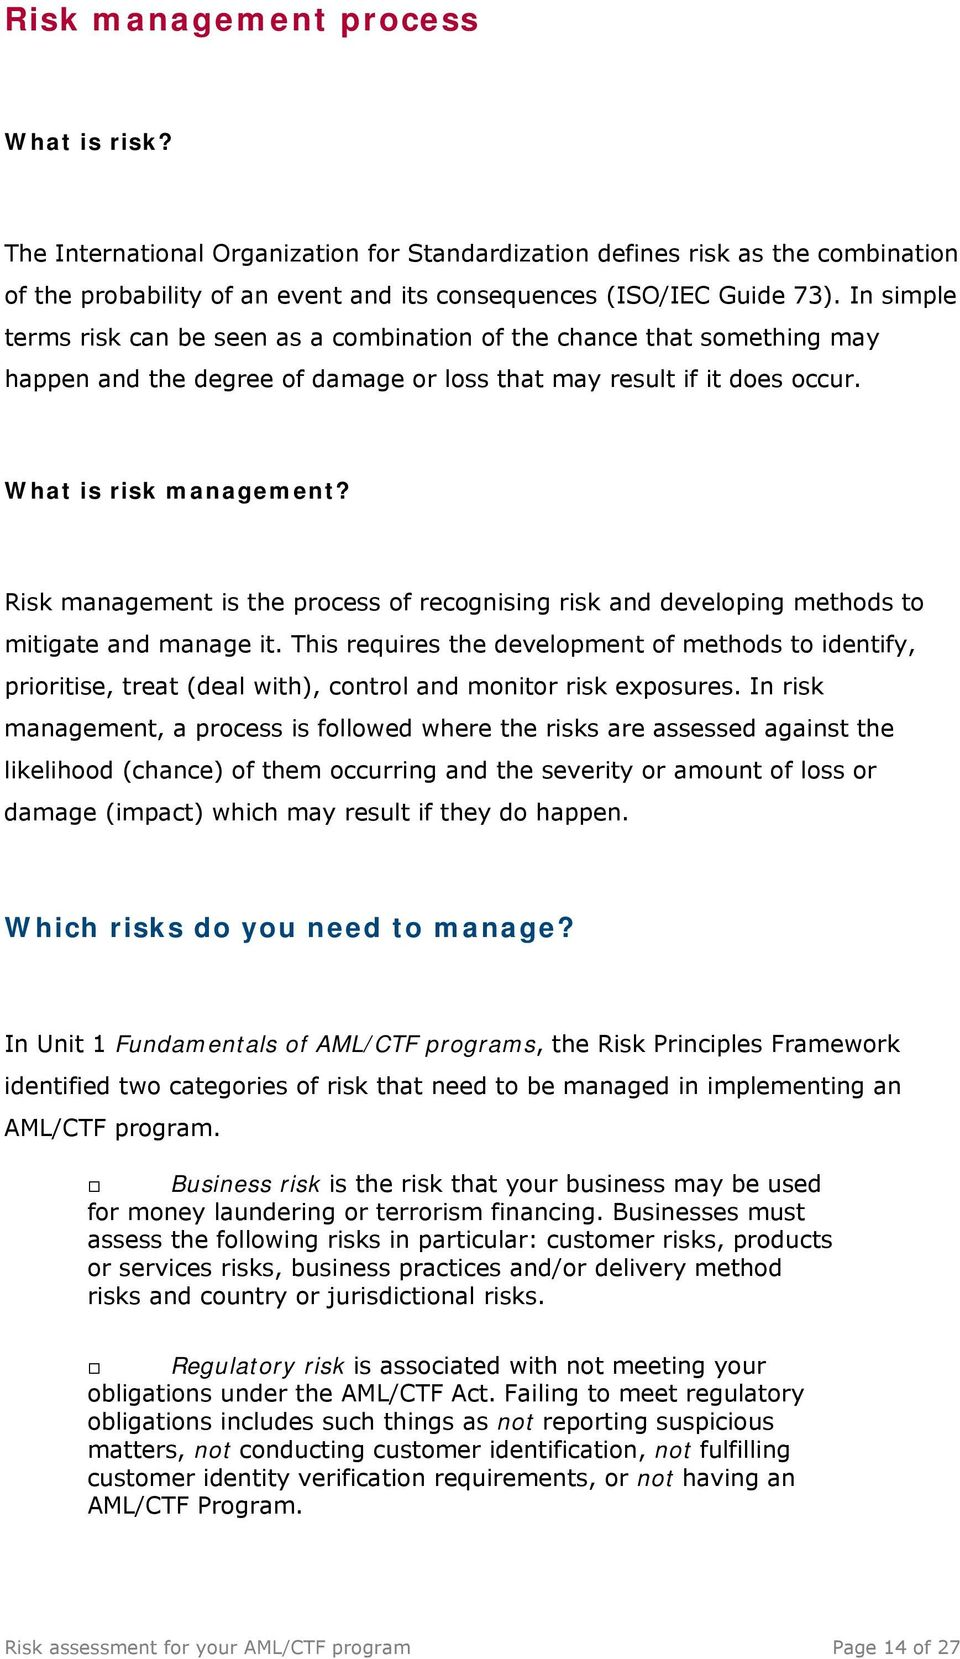 Risk management is the process of recognising risk and developing methods to mitigate and manage it.